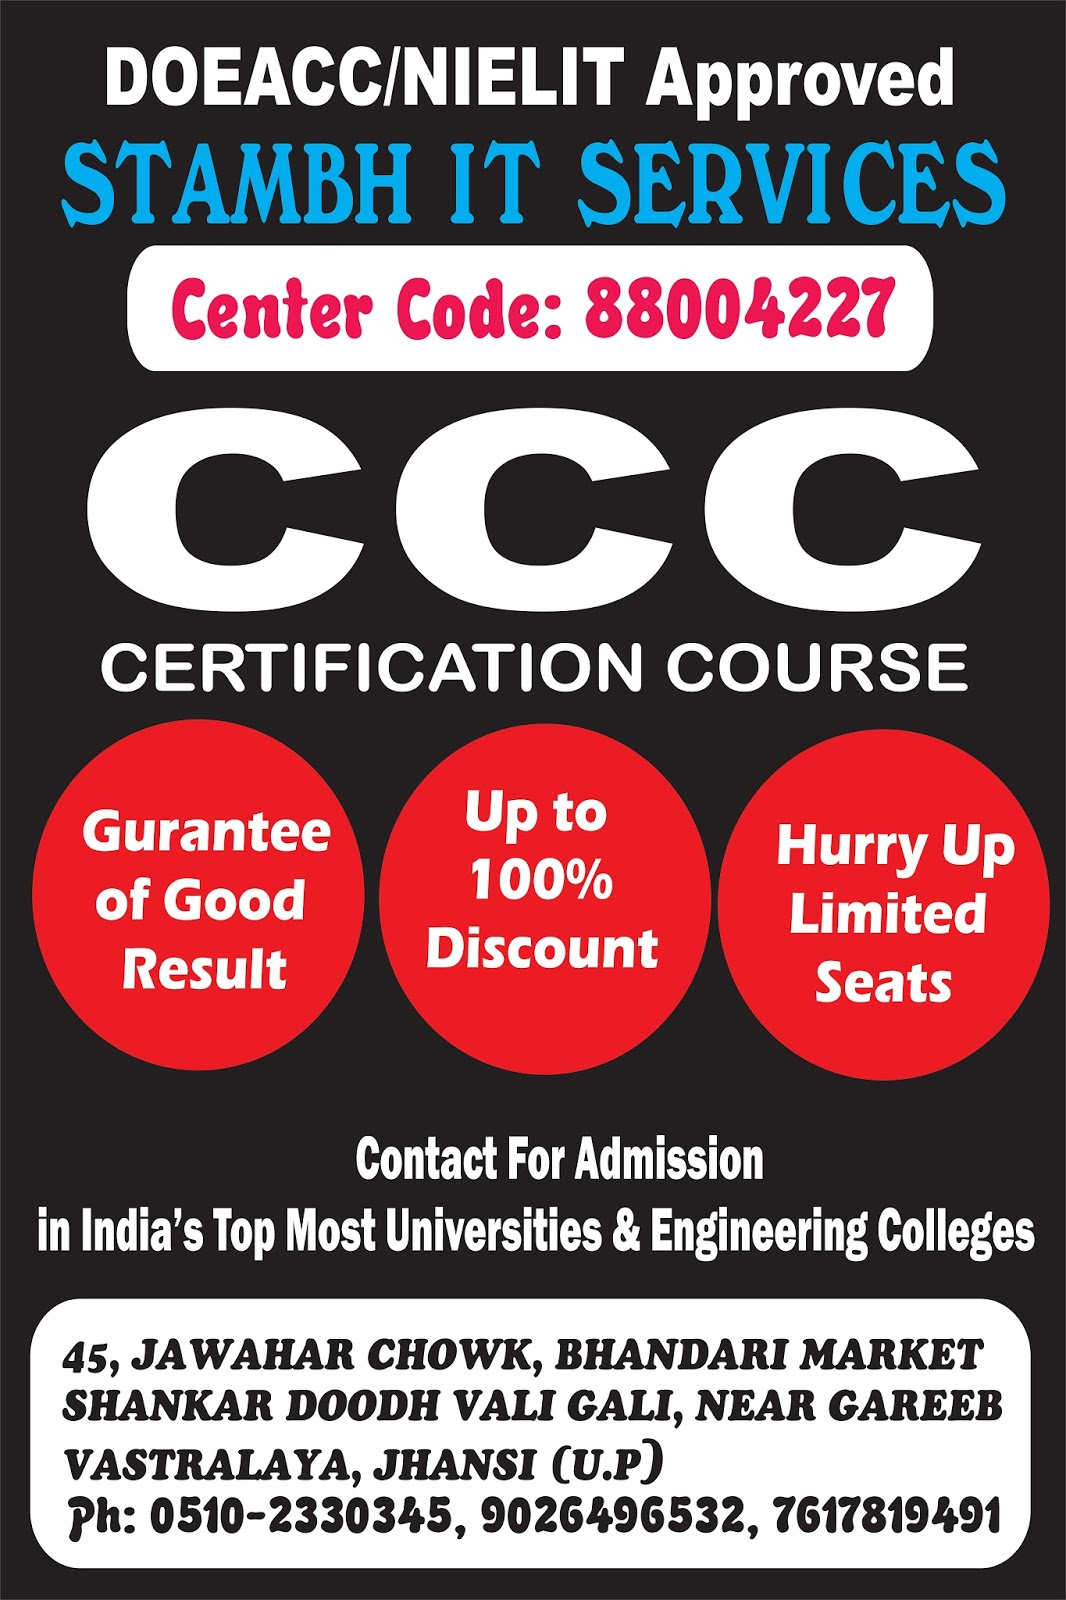 Stambh It Services Ccc Certification Course Nielitdoeacc Approved